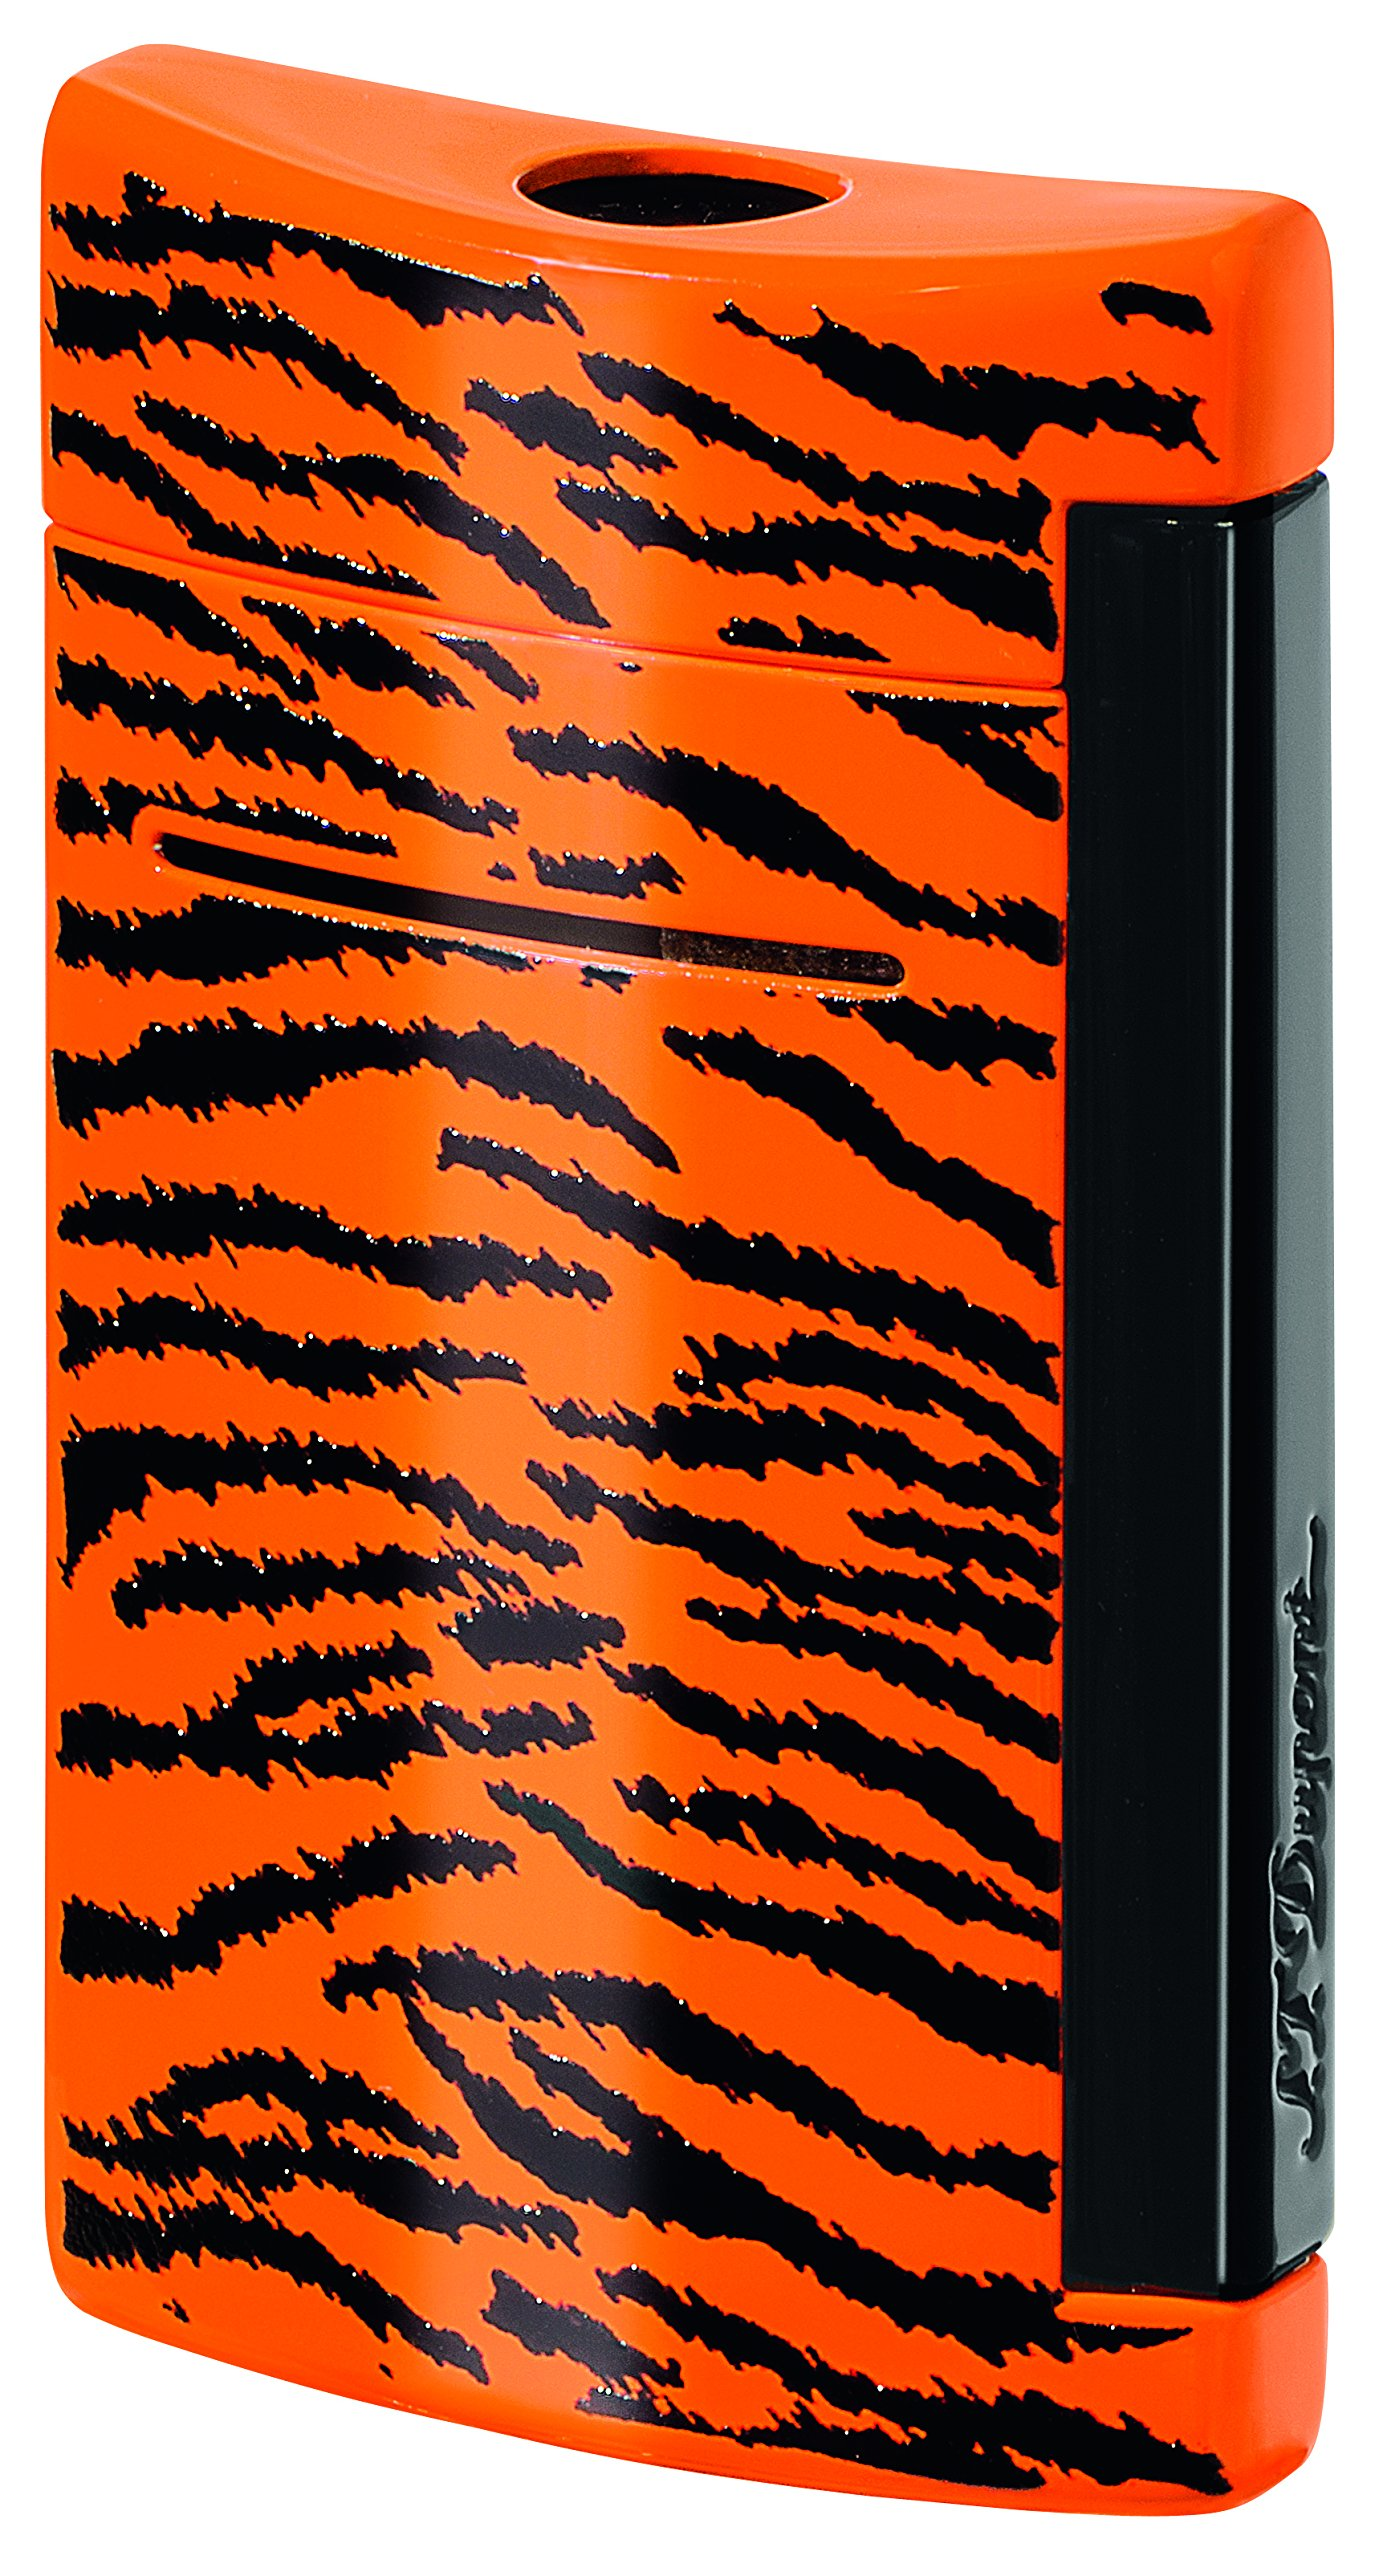 S.T. Dupont MiniJet Black and Orange Tiger Pattern Torch Flame Lighter